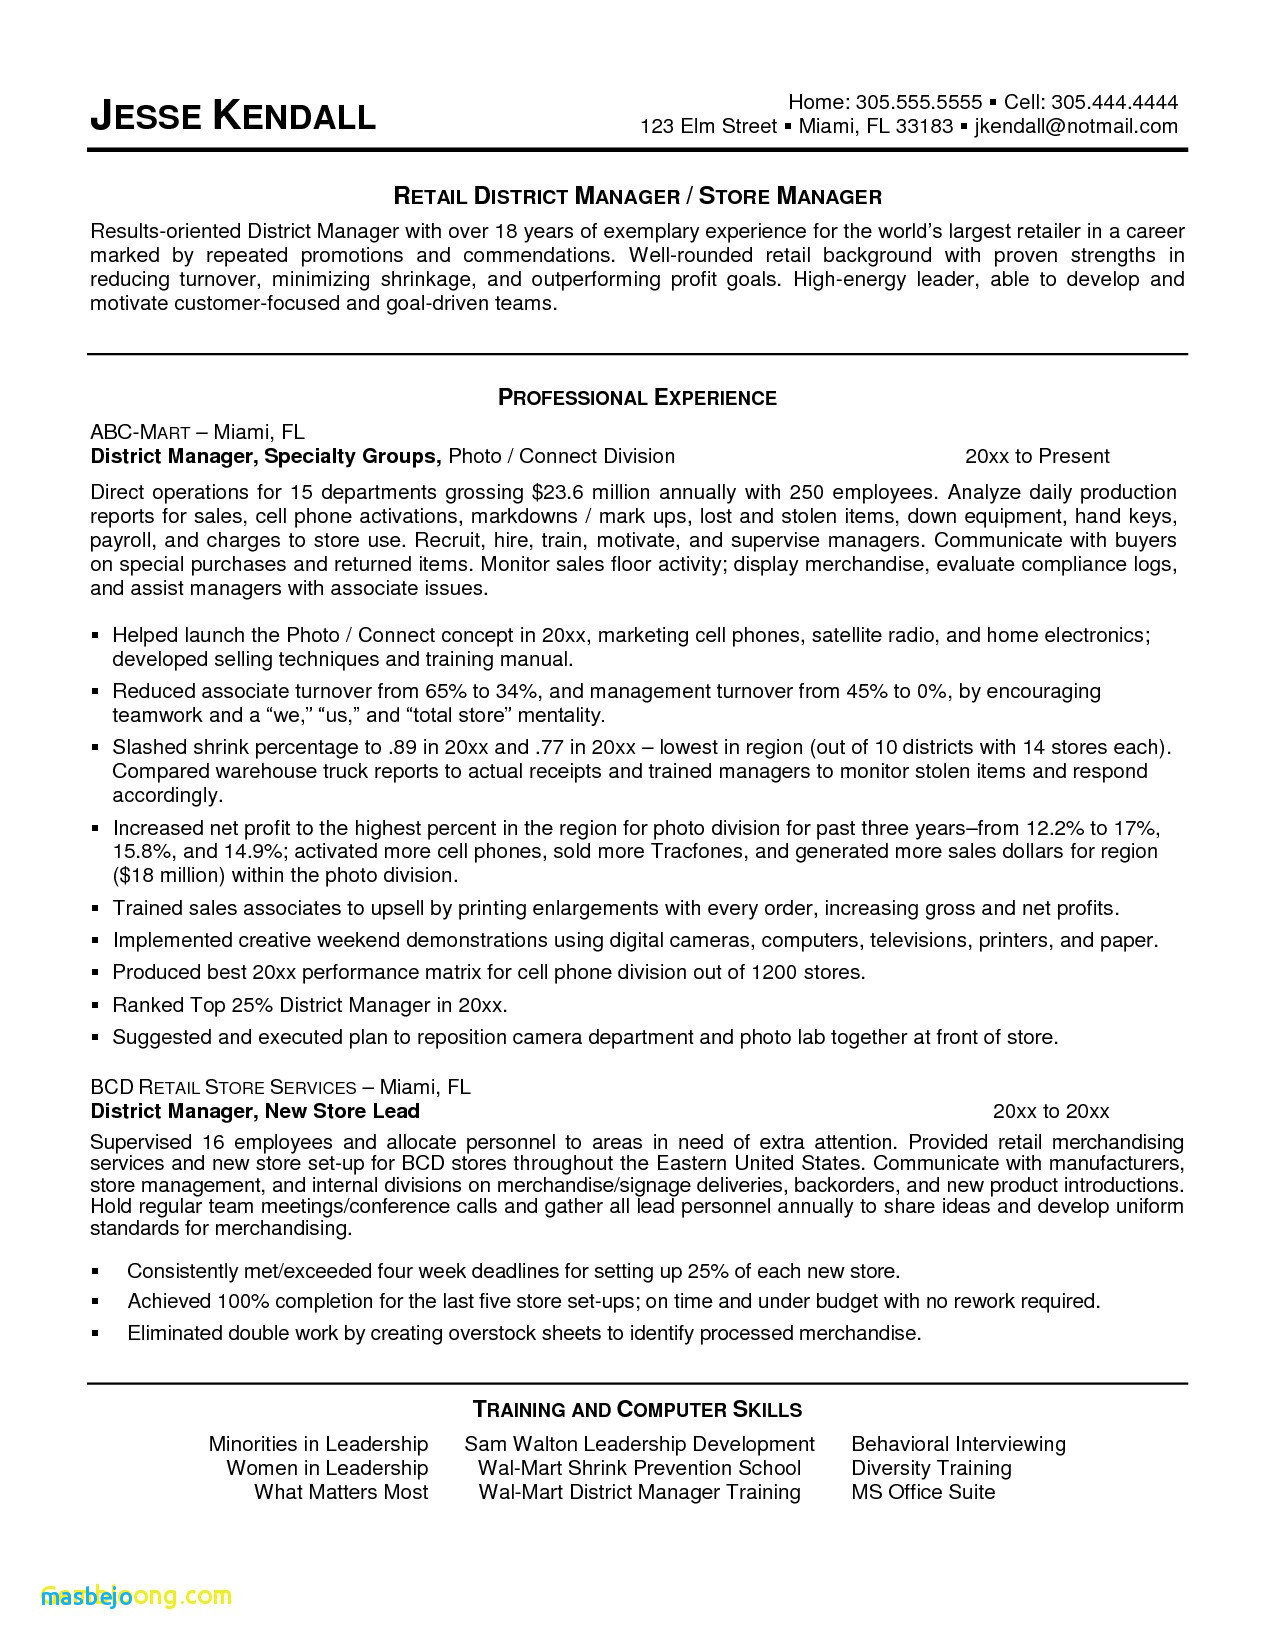 Office Manager Resume - Fice Manager Resume Pg and Ug Dissertation Prize Resume